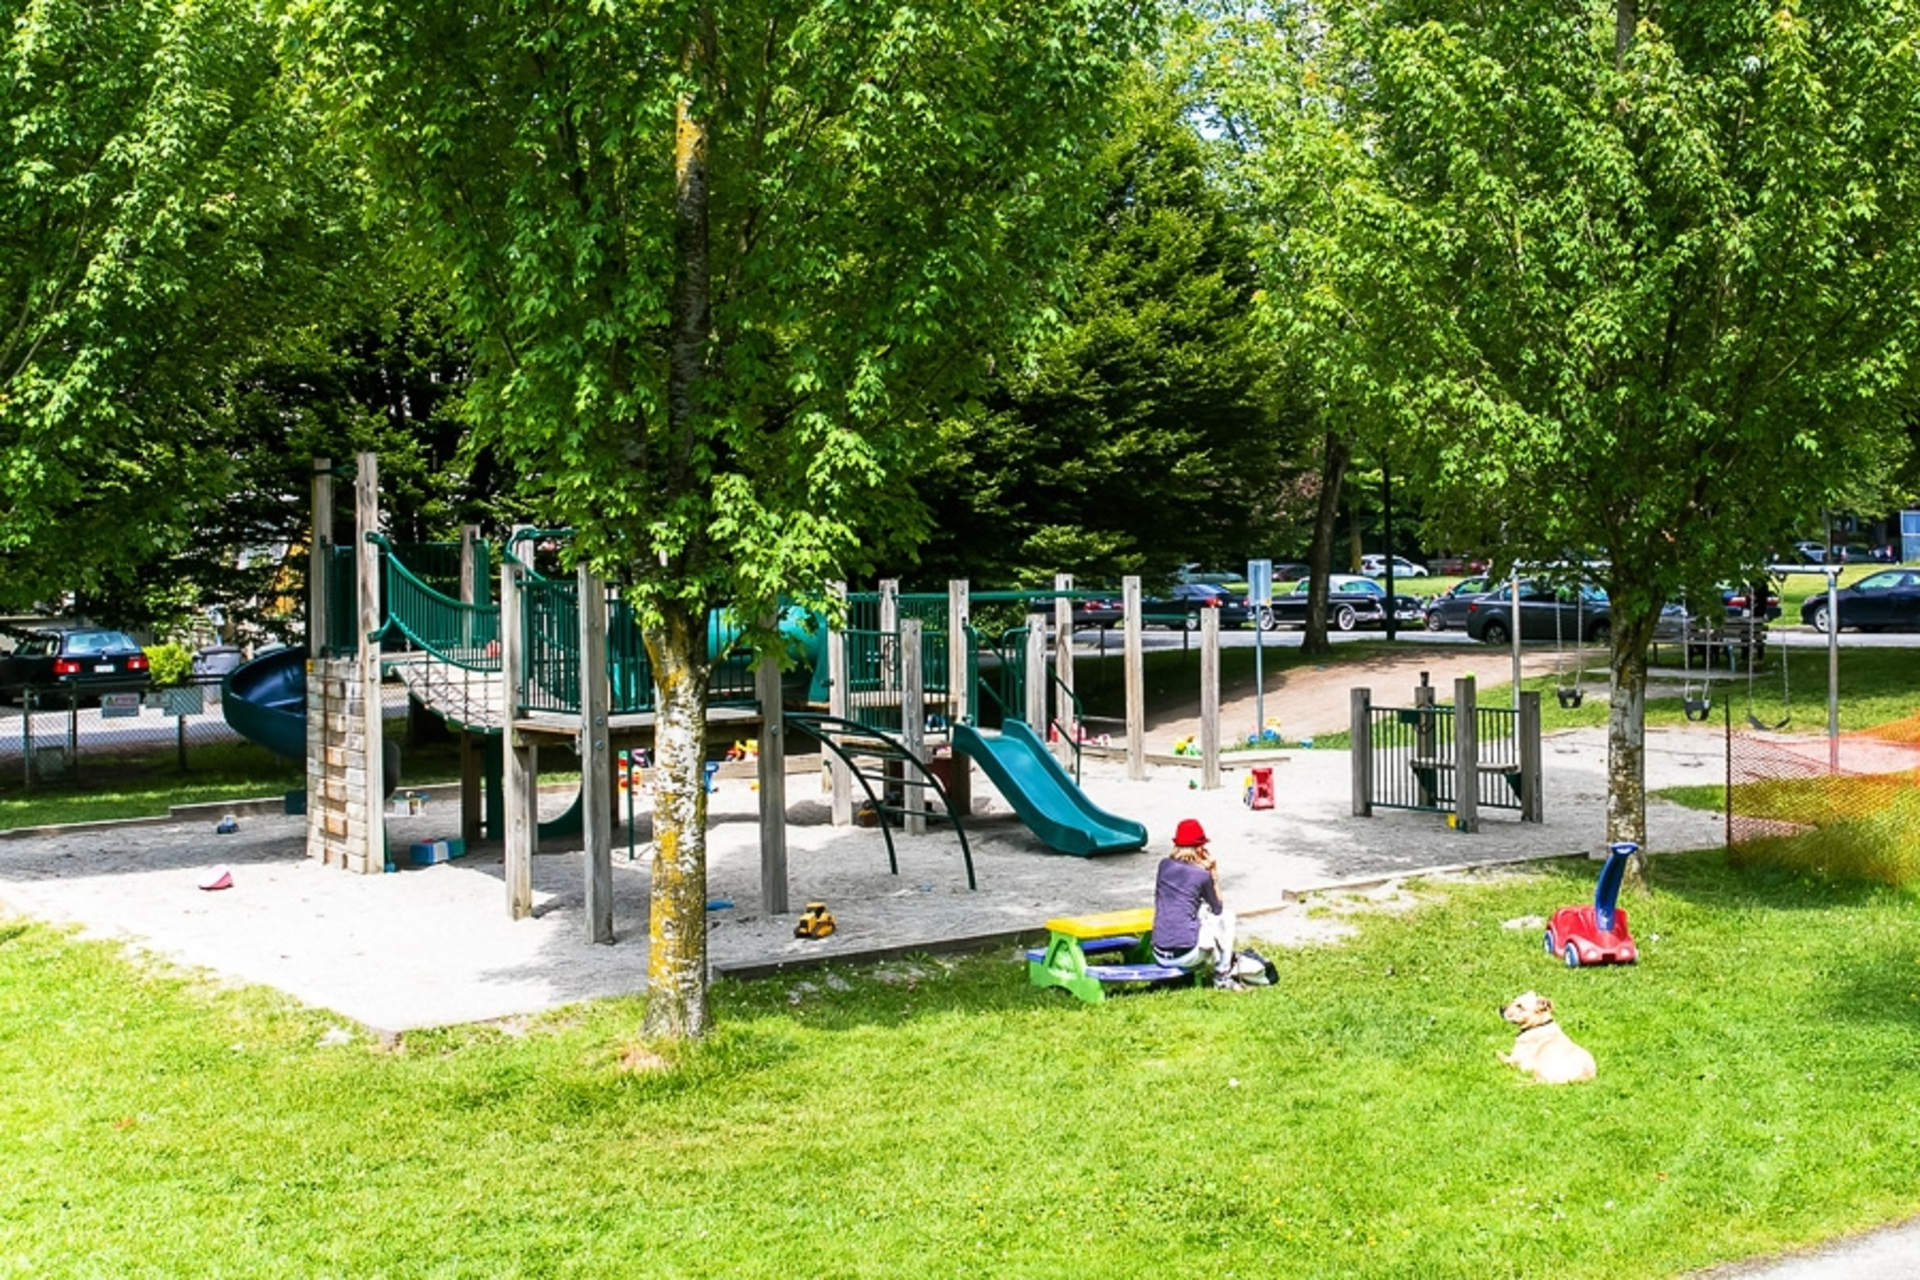 Children's play area at 1706 West 15th Avenue, Shaughnessy, Vancouver West